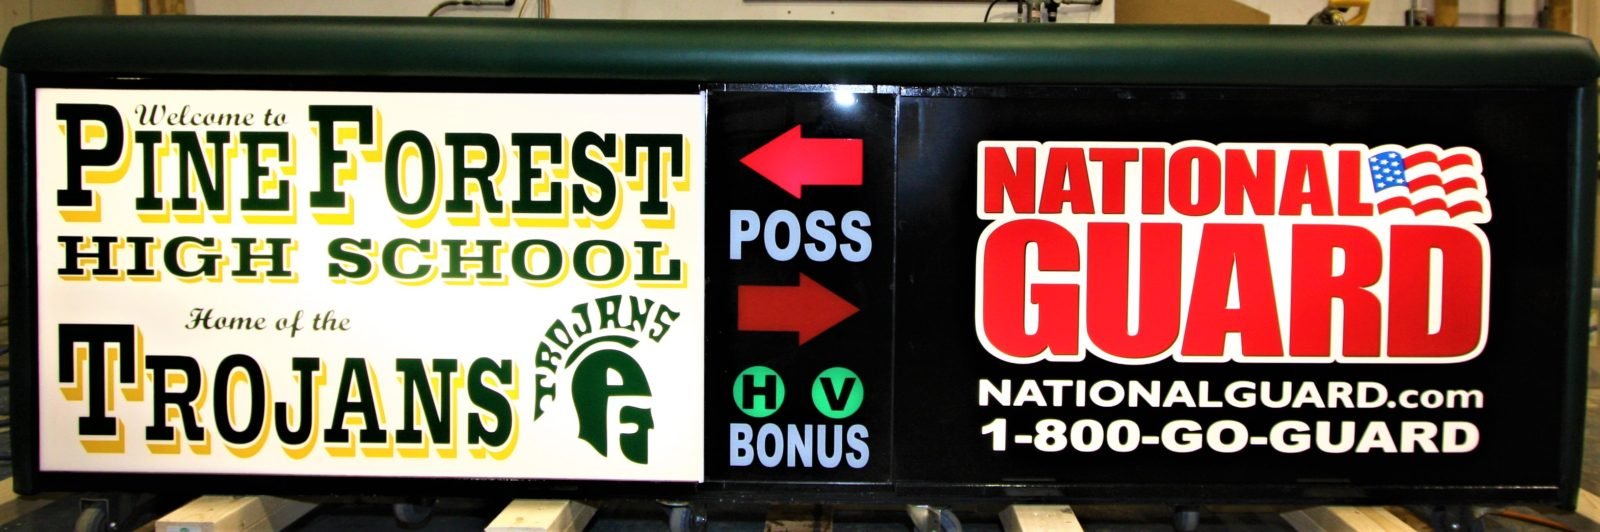 Pine Forest high school scoring table North Carolina Army National Guard NCARNG